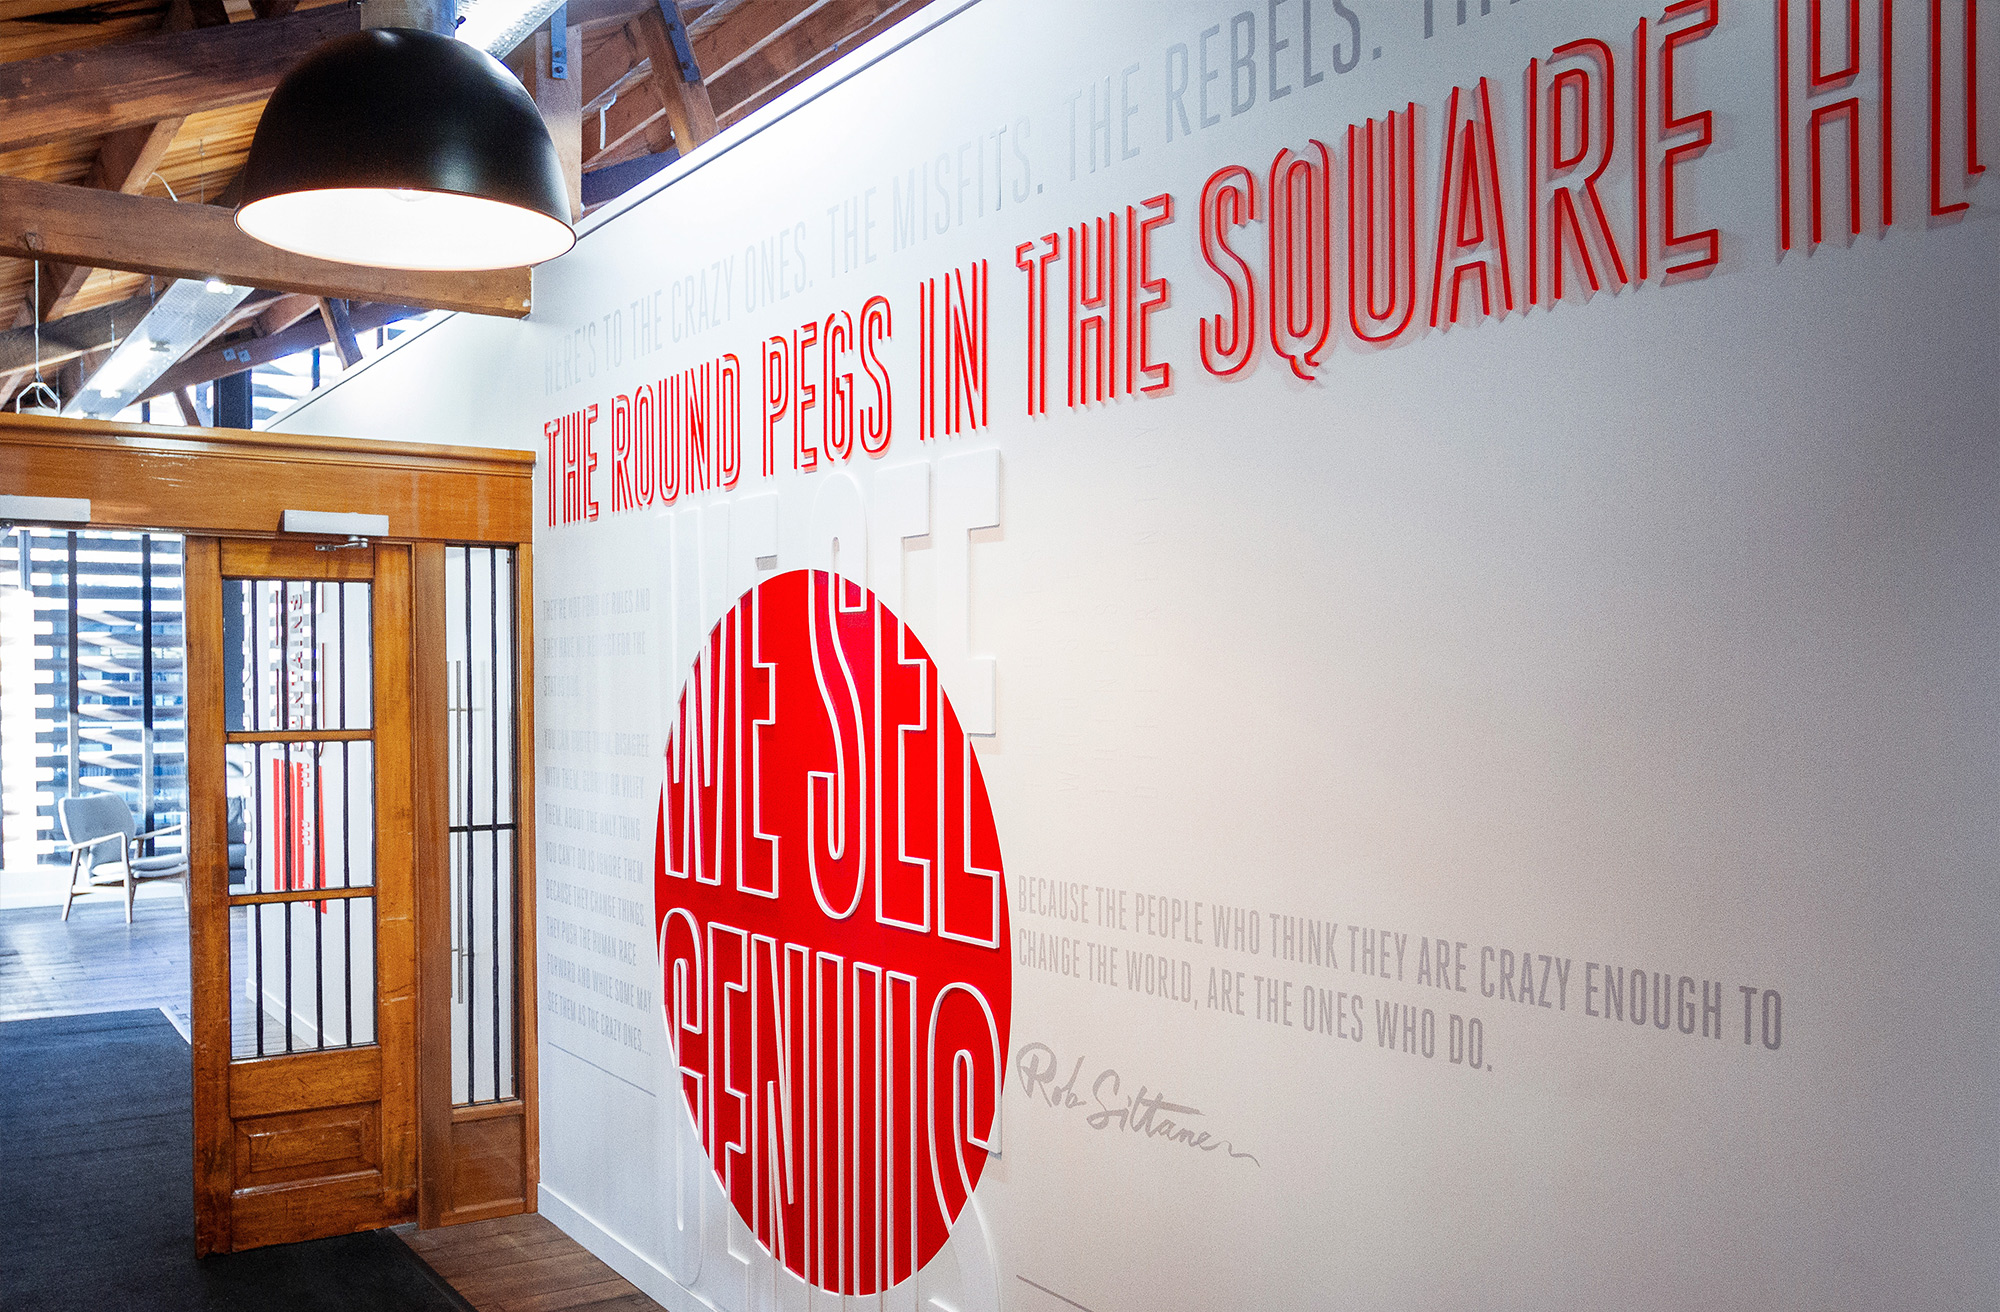 Inspirational quotes for experiential graphics for Ogilvy & Mather New Zealand Office. @enviromeant.com